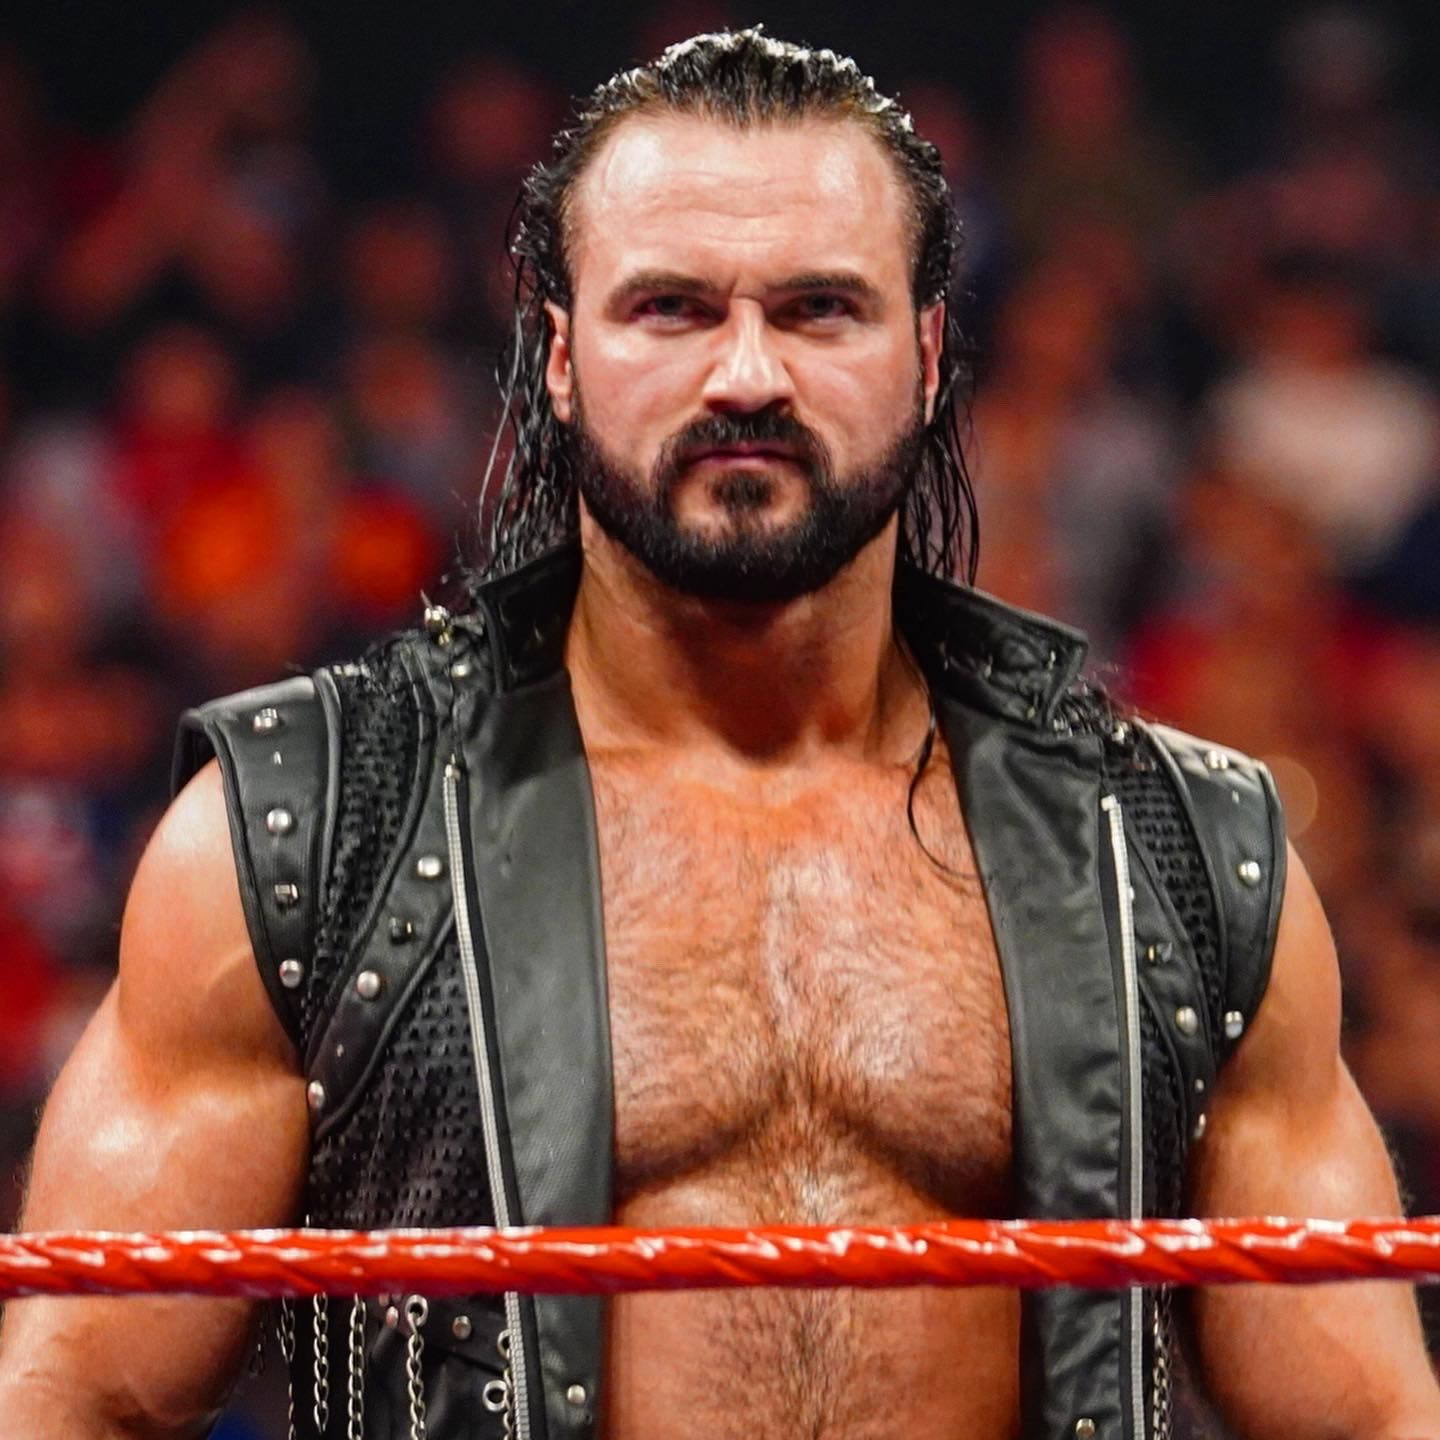 Drew McIntyre en WWE Monday Night Raw (27/01/2019) / WWE Brock Lesnar vs Drew McIntyre en WrestleMania 36